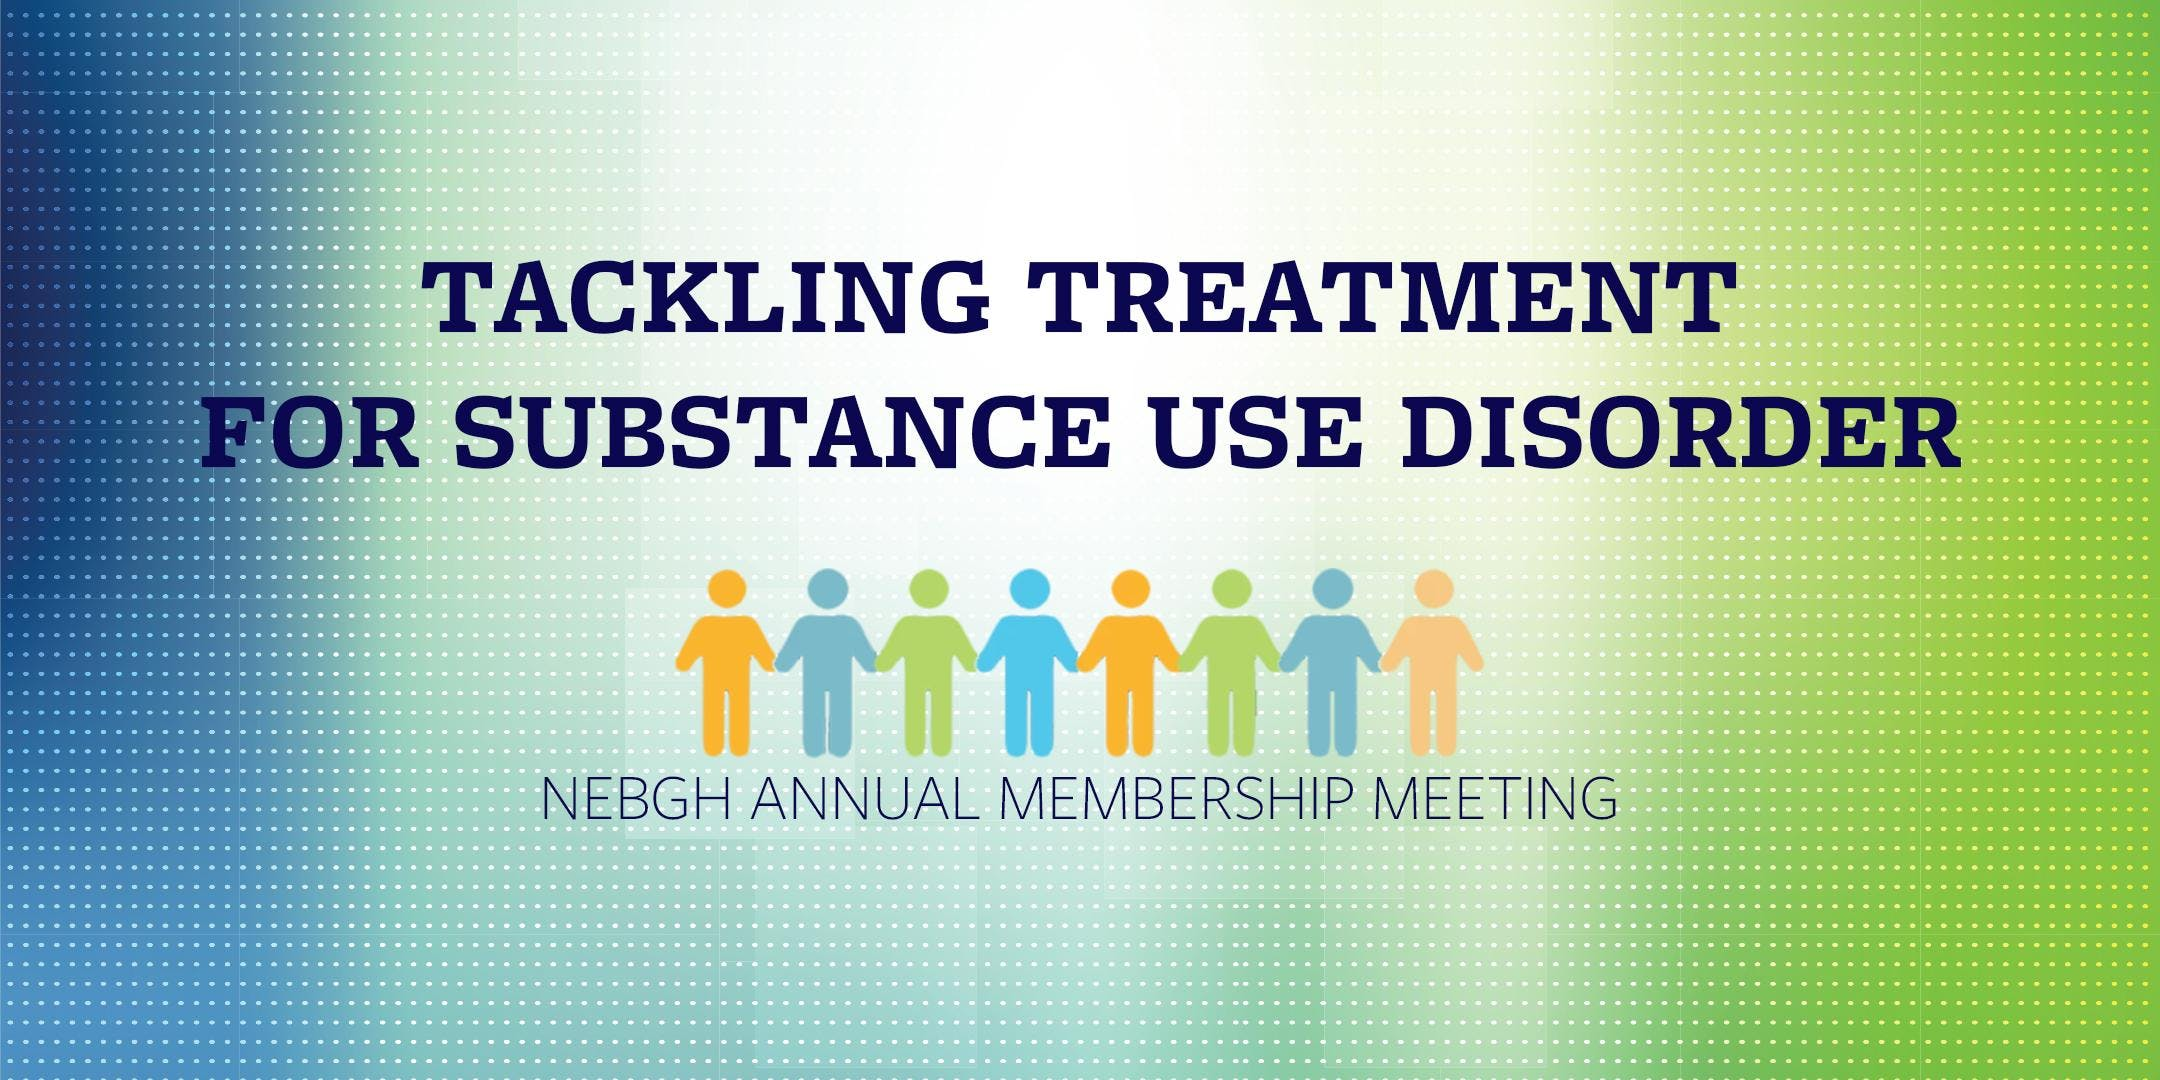 Tackling Treatment for Substance Use Disorder